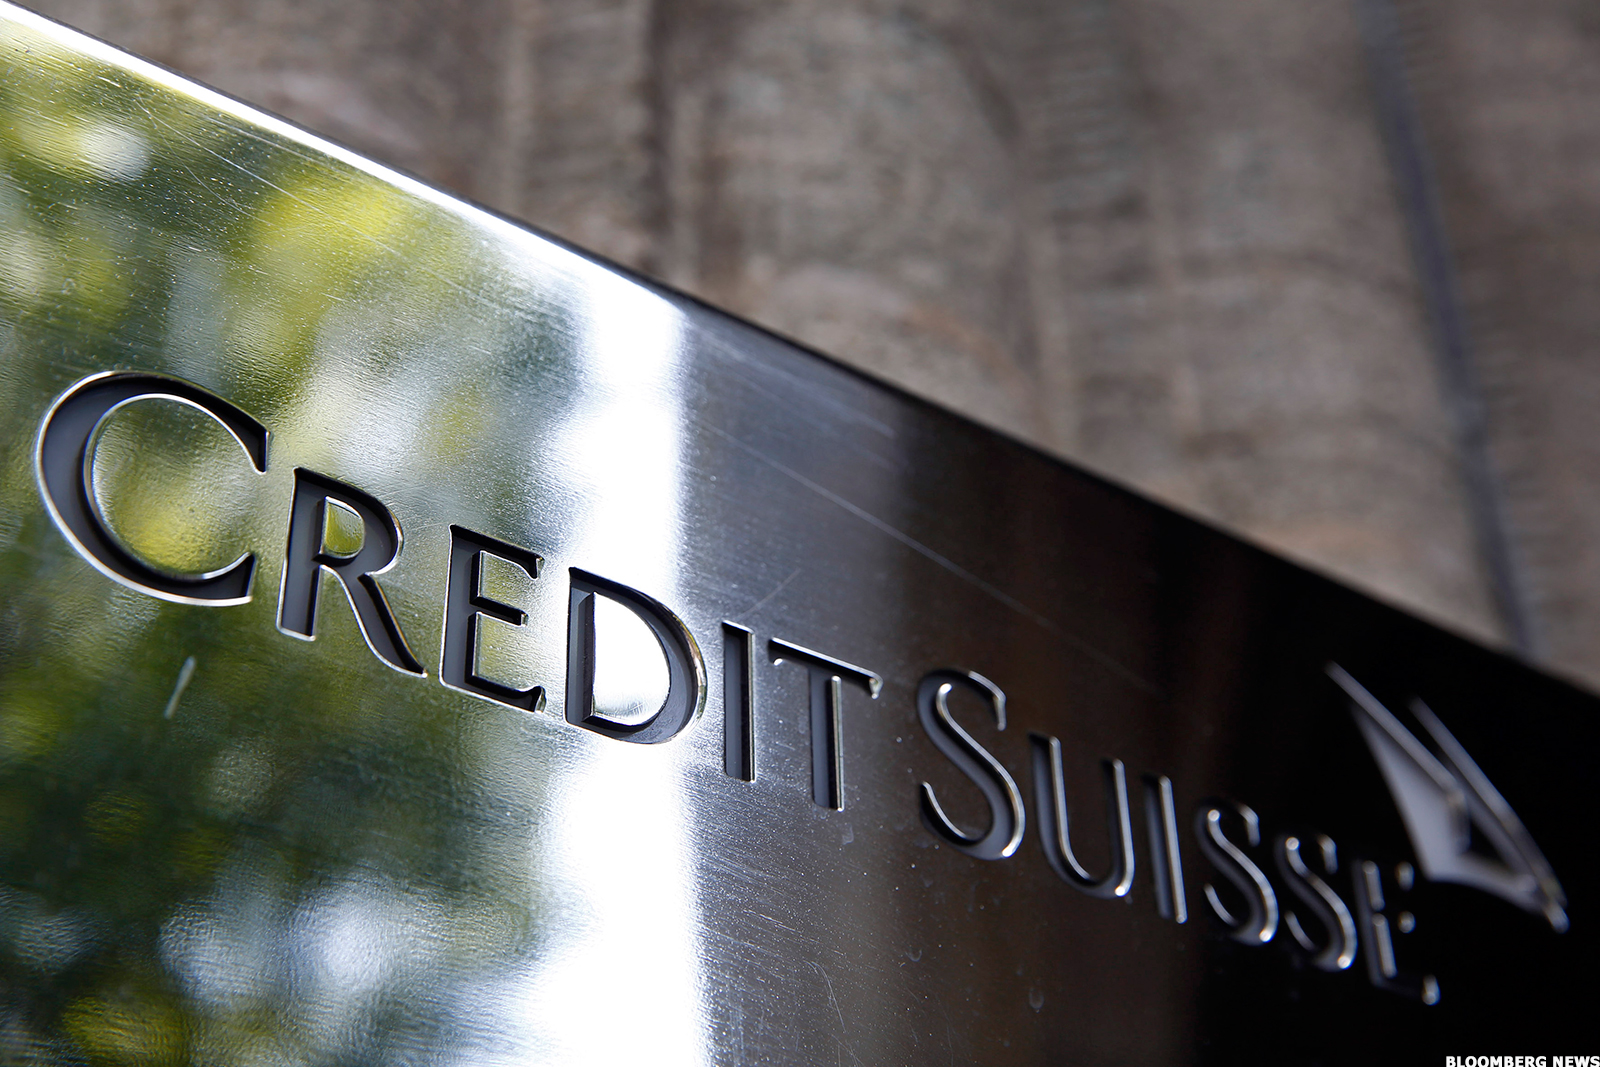 Kkr credit suisse upcoming ipo